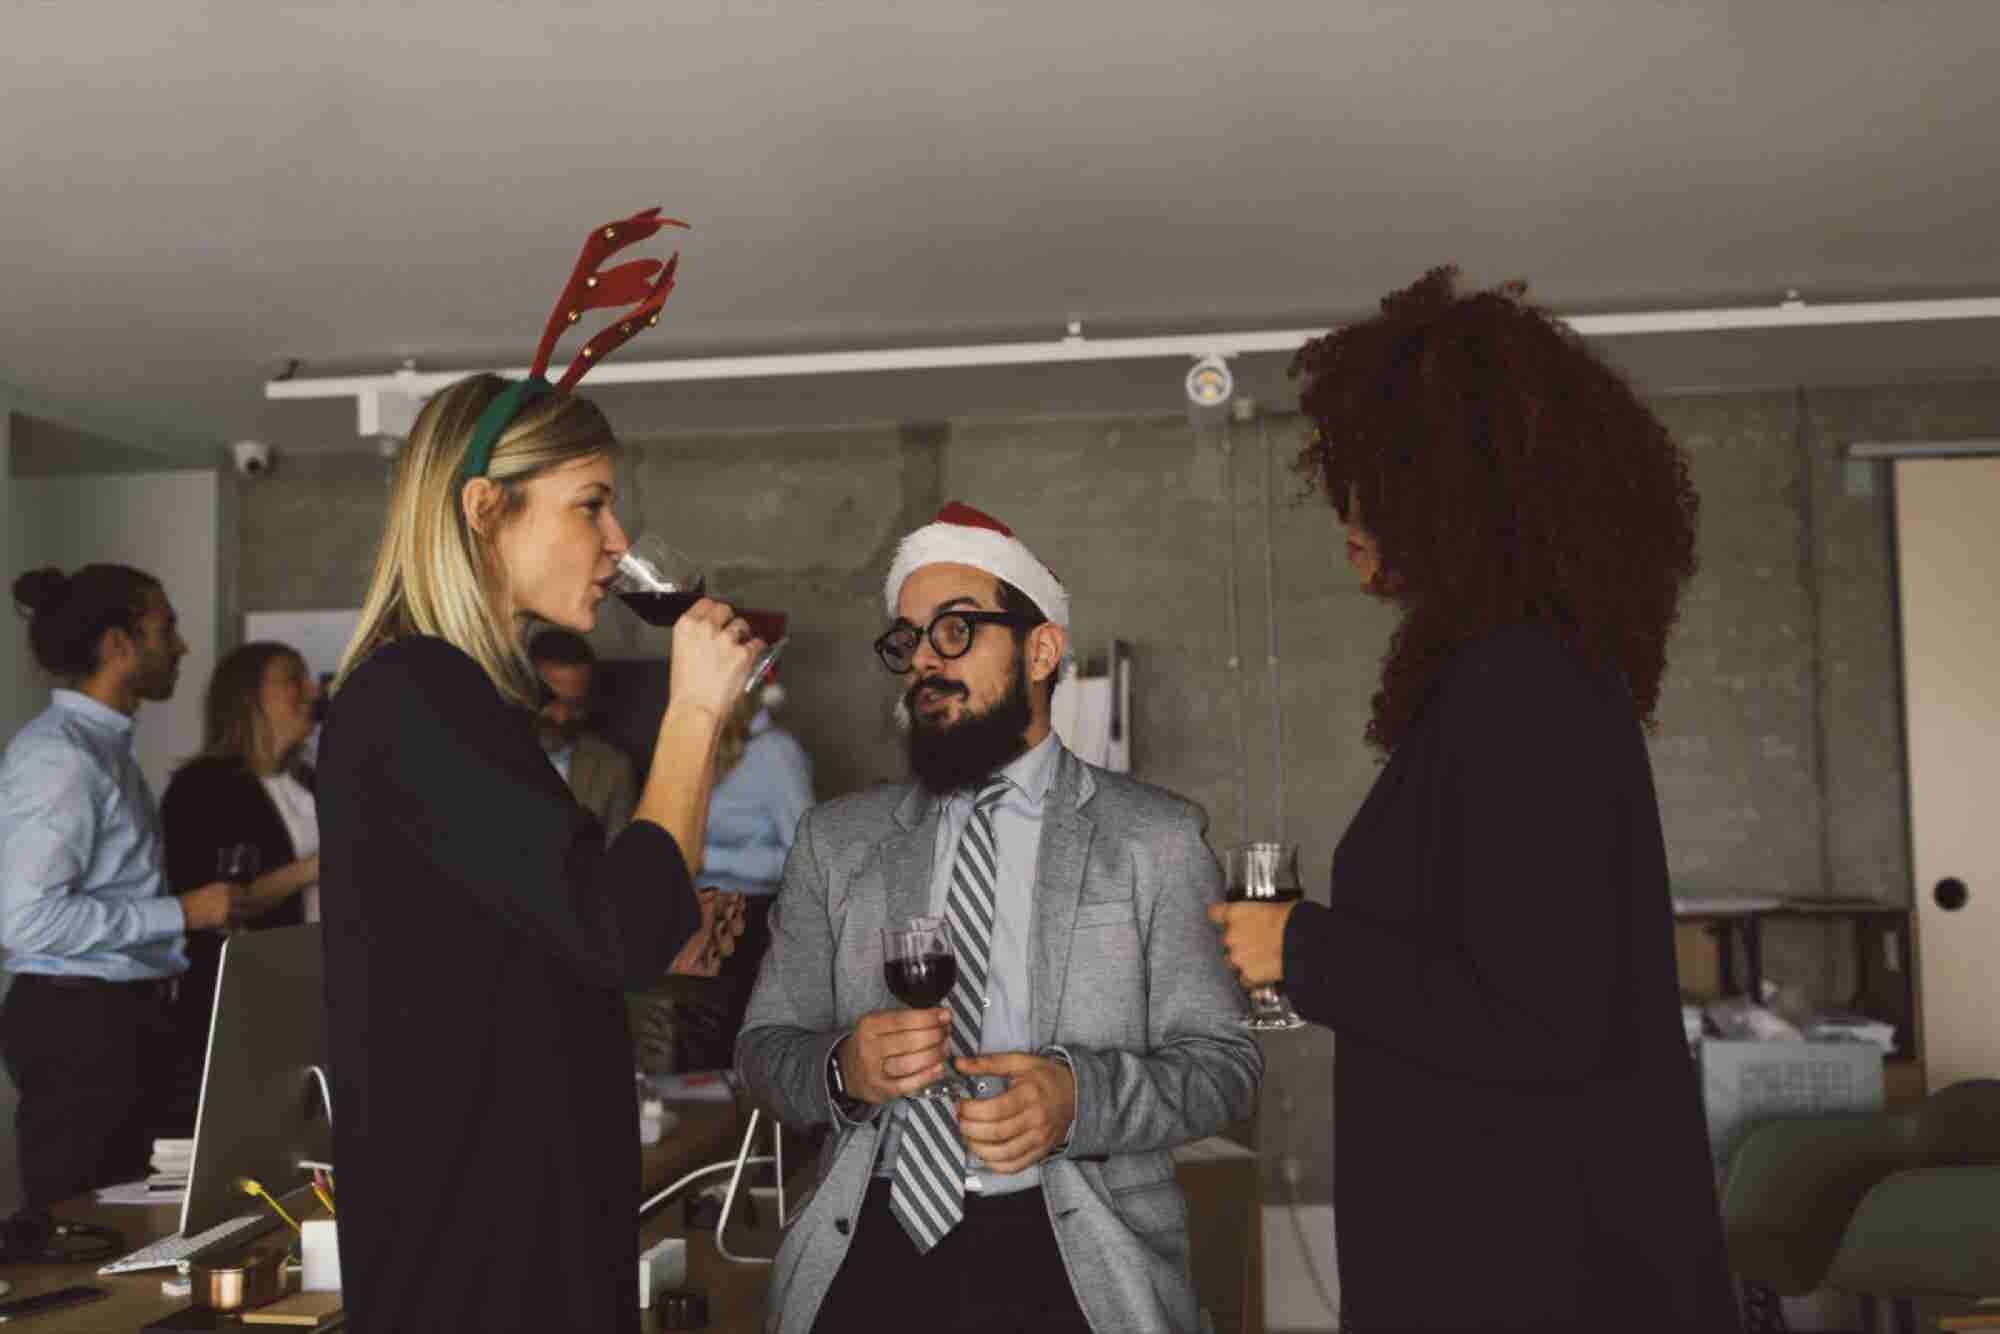 How to Make the Most of This Holiday's Party Season Without Screwing T...